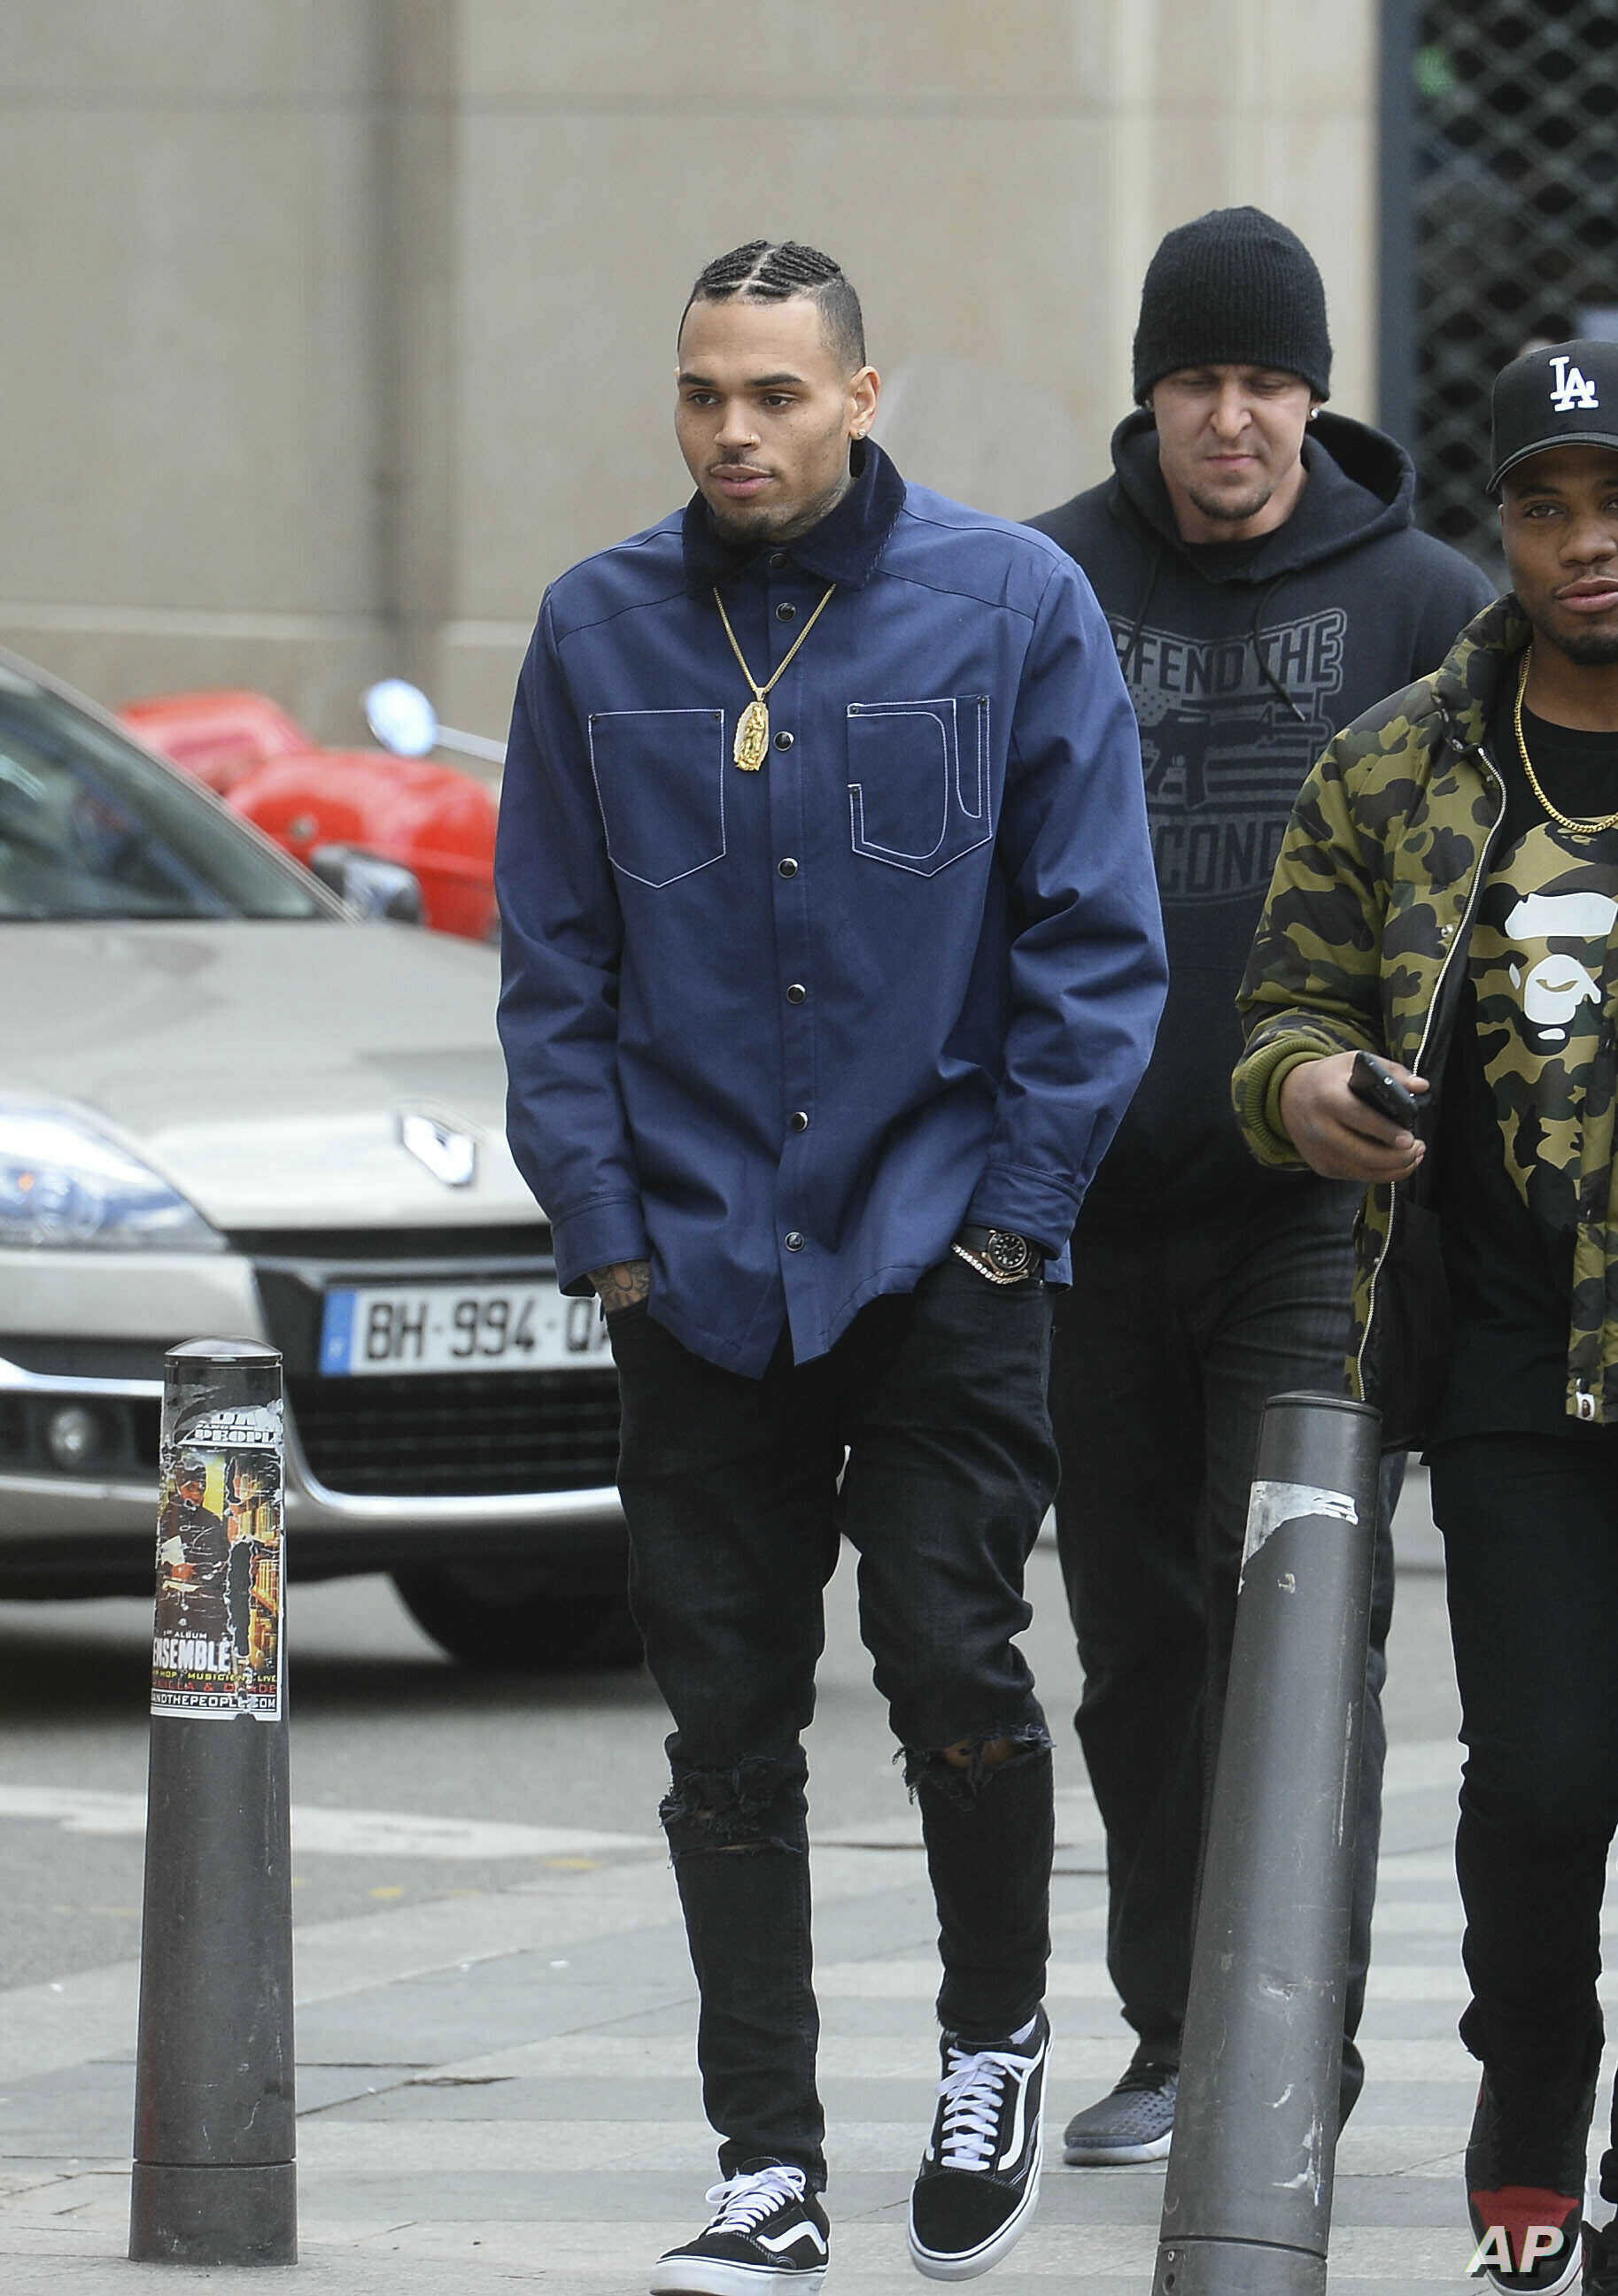 Lawyer Accuses Chris Brown of 'Disrespect' in Rape Case